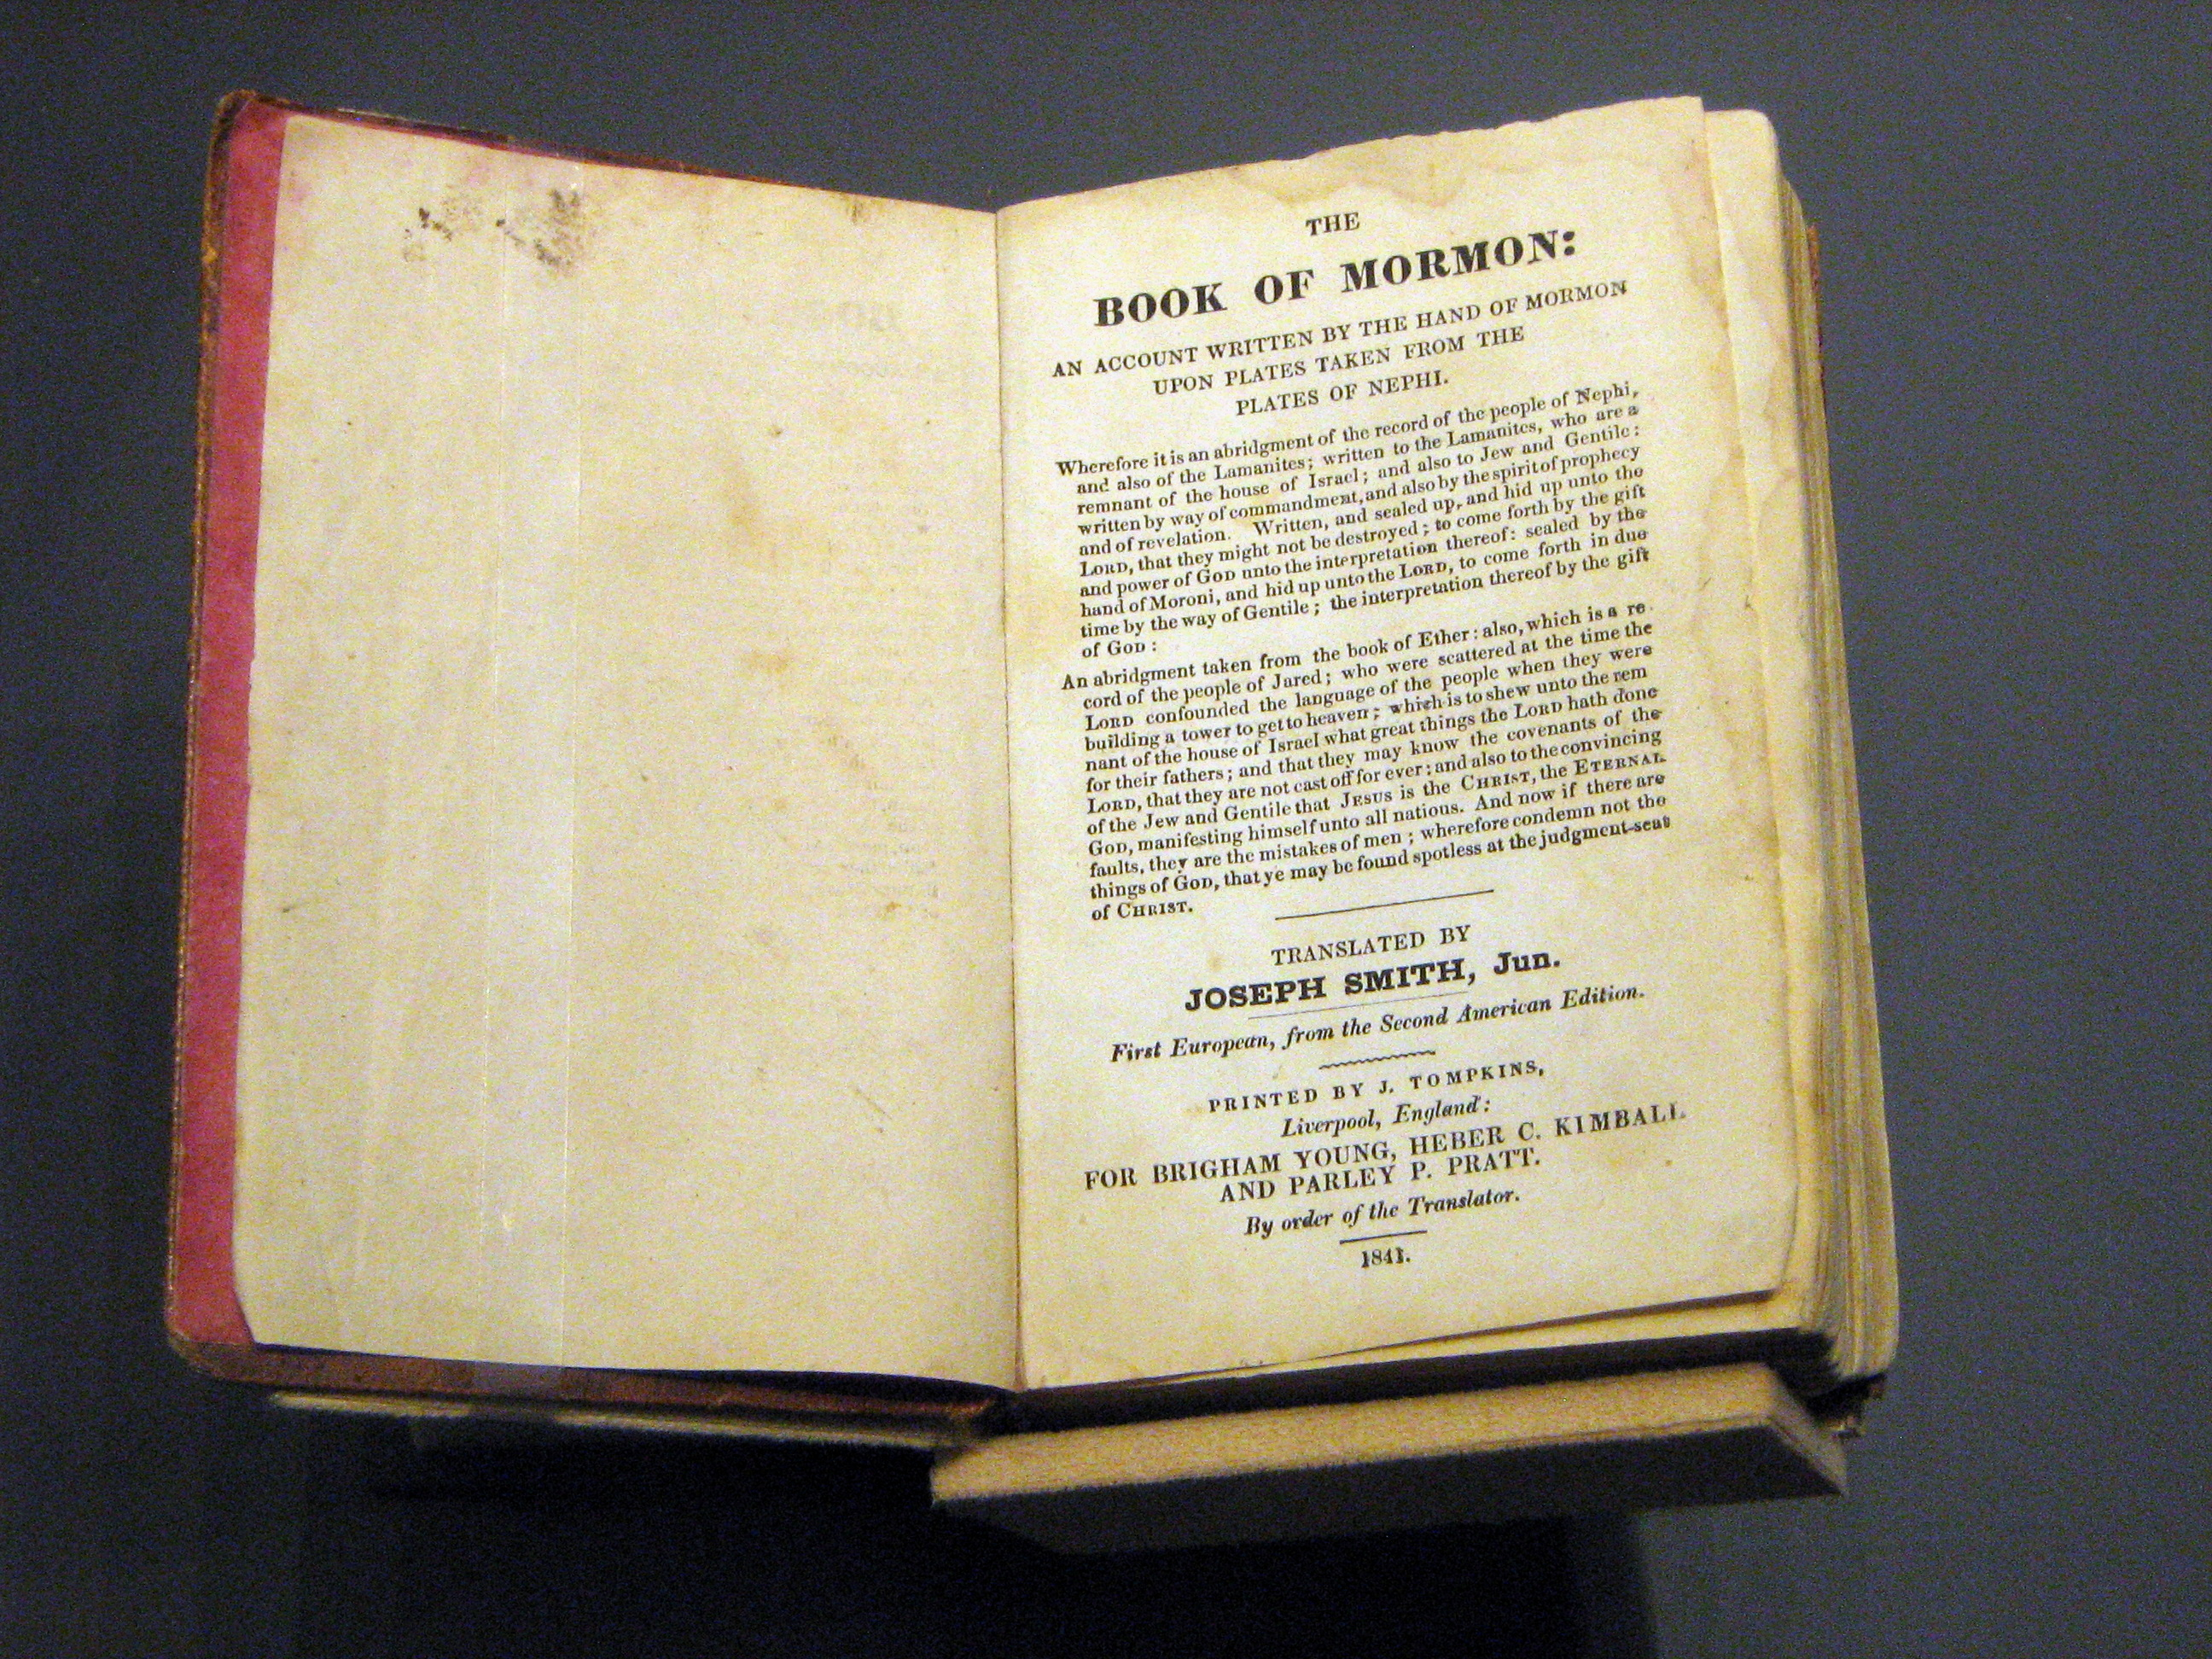 1841_Book_of_Mormon_open_to_title_page